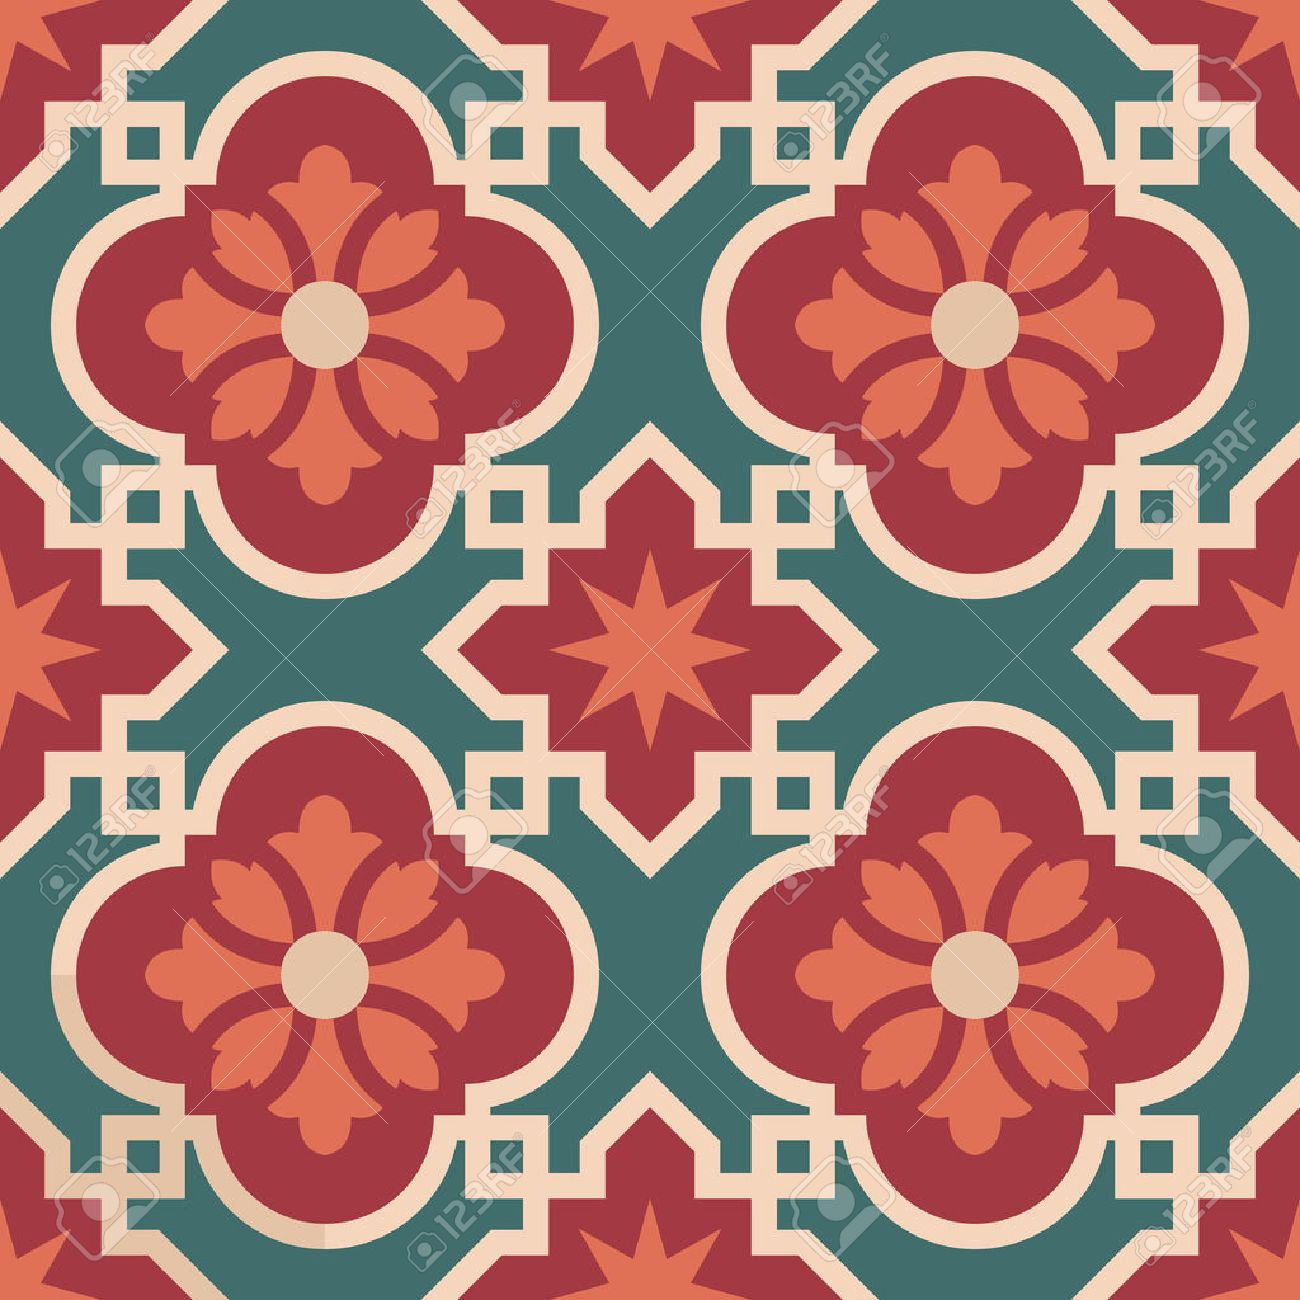 Vintage ceramic mosaic floor tile seamless pattern traditional vintage ceramic mosaic floor tile seamless pattern traditional ornate red floral design eps10 vector dailygadgetfo Images